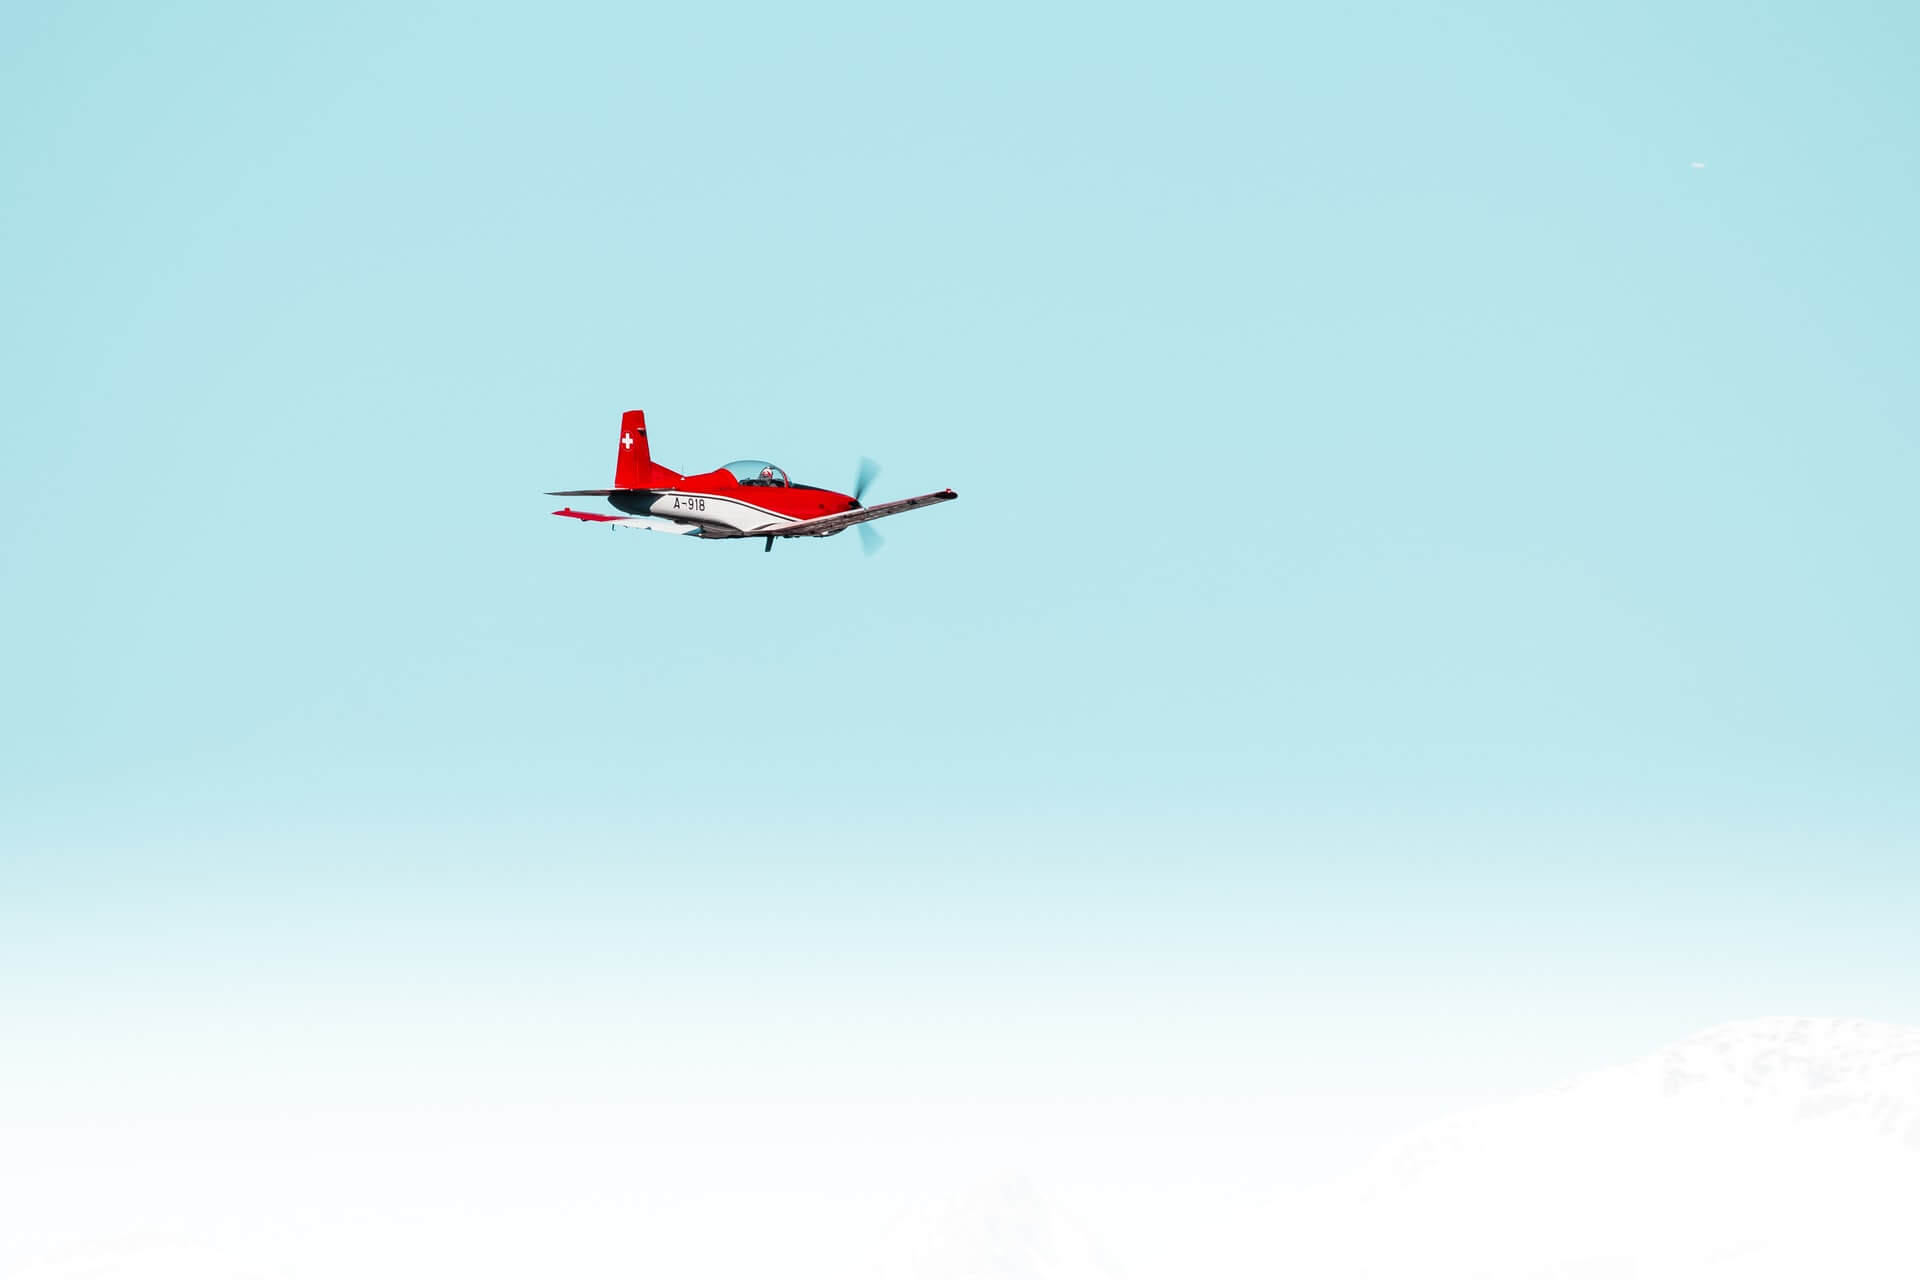 Red plane flying in clear skies